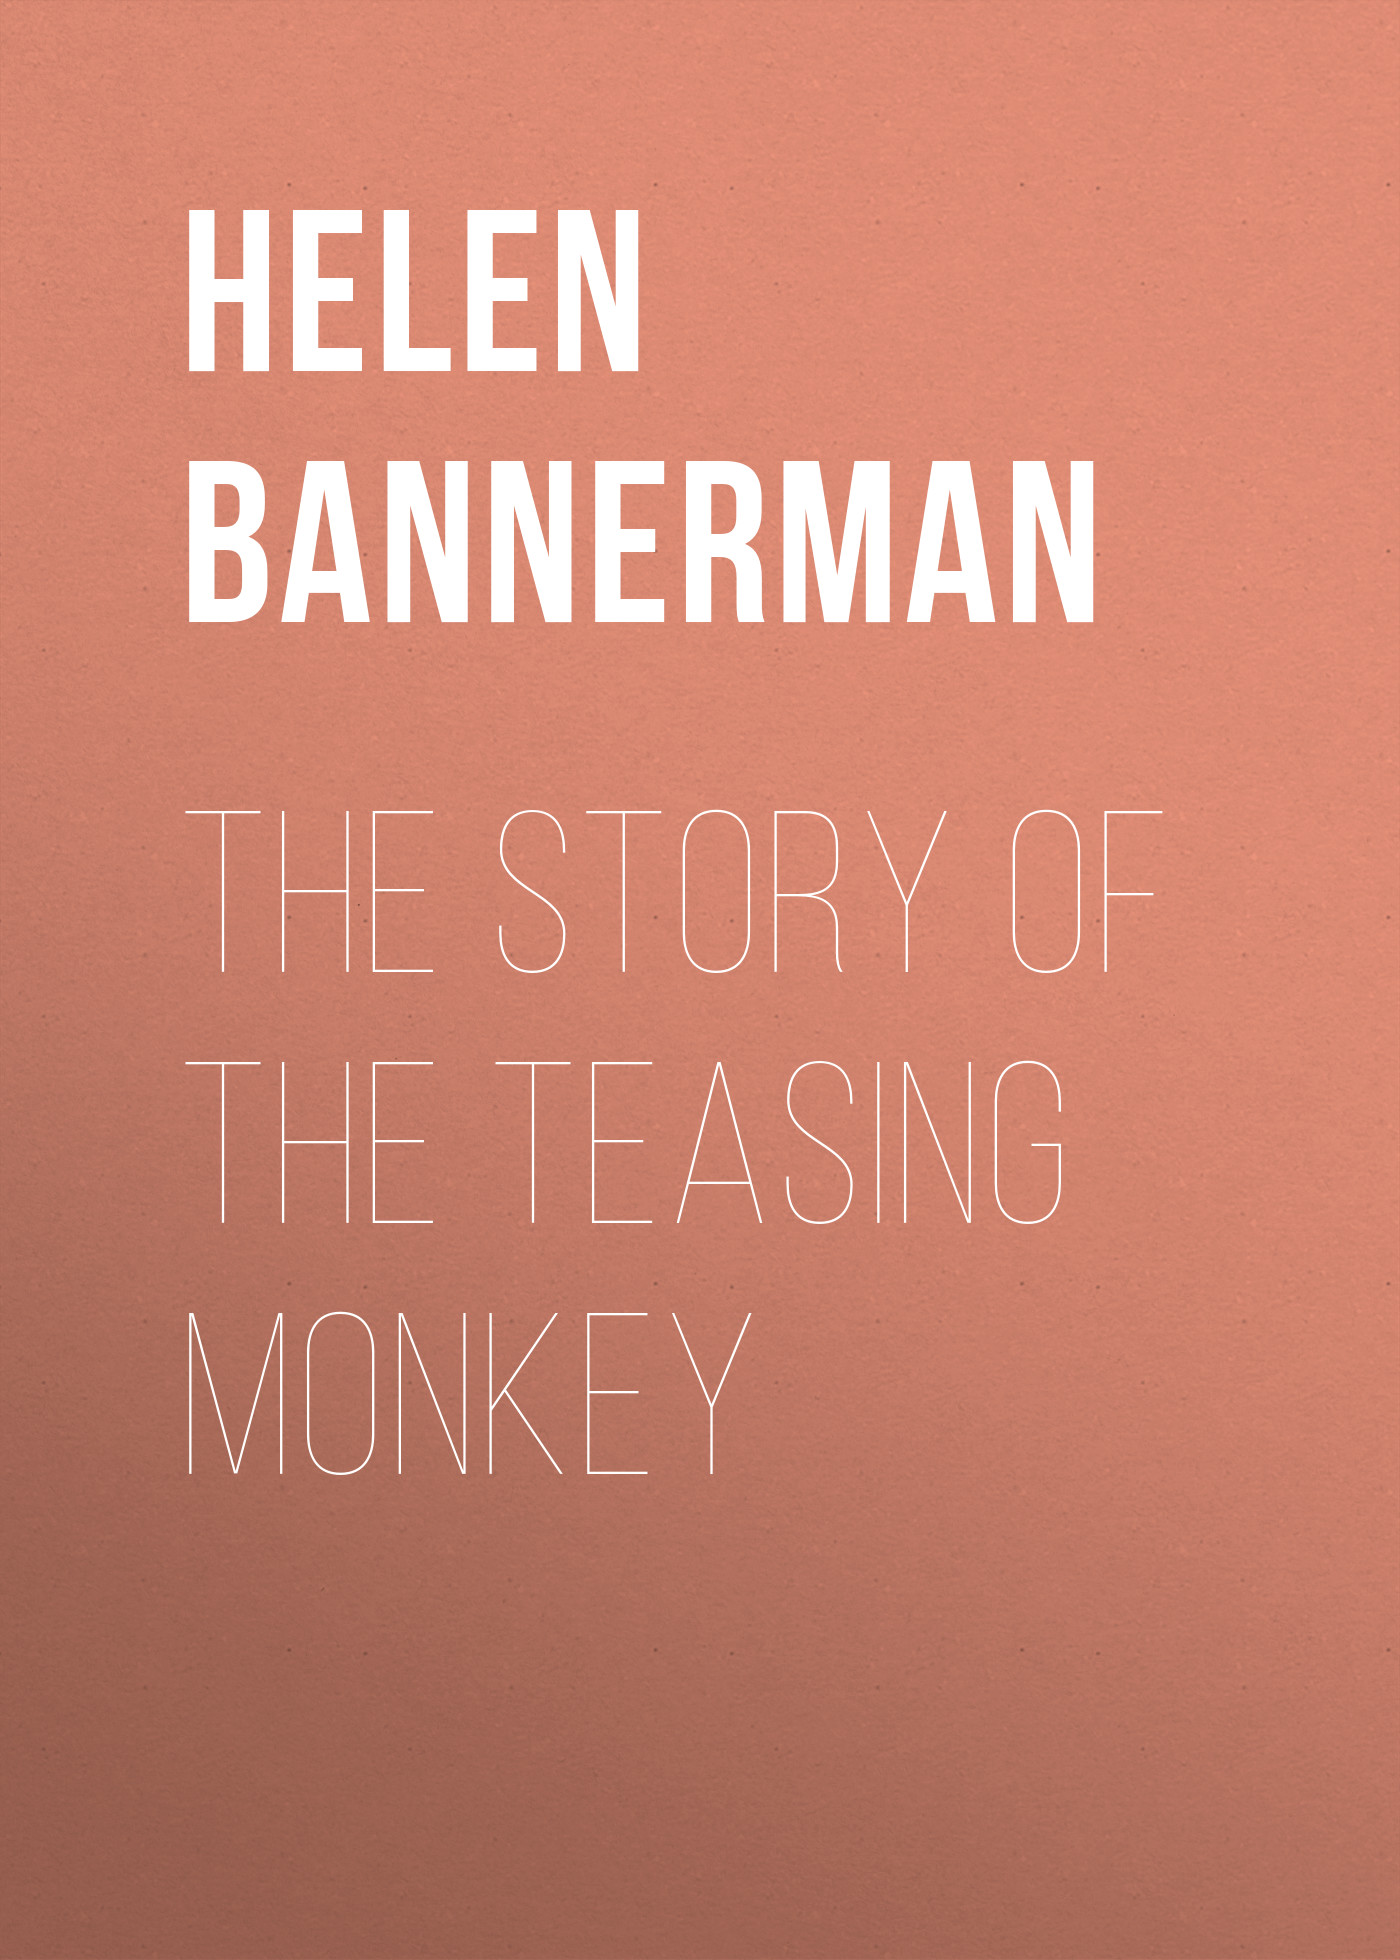 Bannerman Helen The Story of the Teasing Monkey телевизор 39 akai lea 39z72т hd 1366x768 титановый